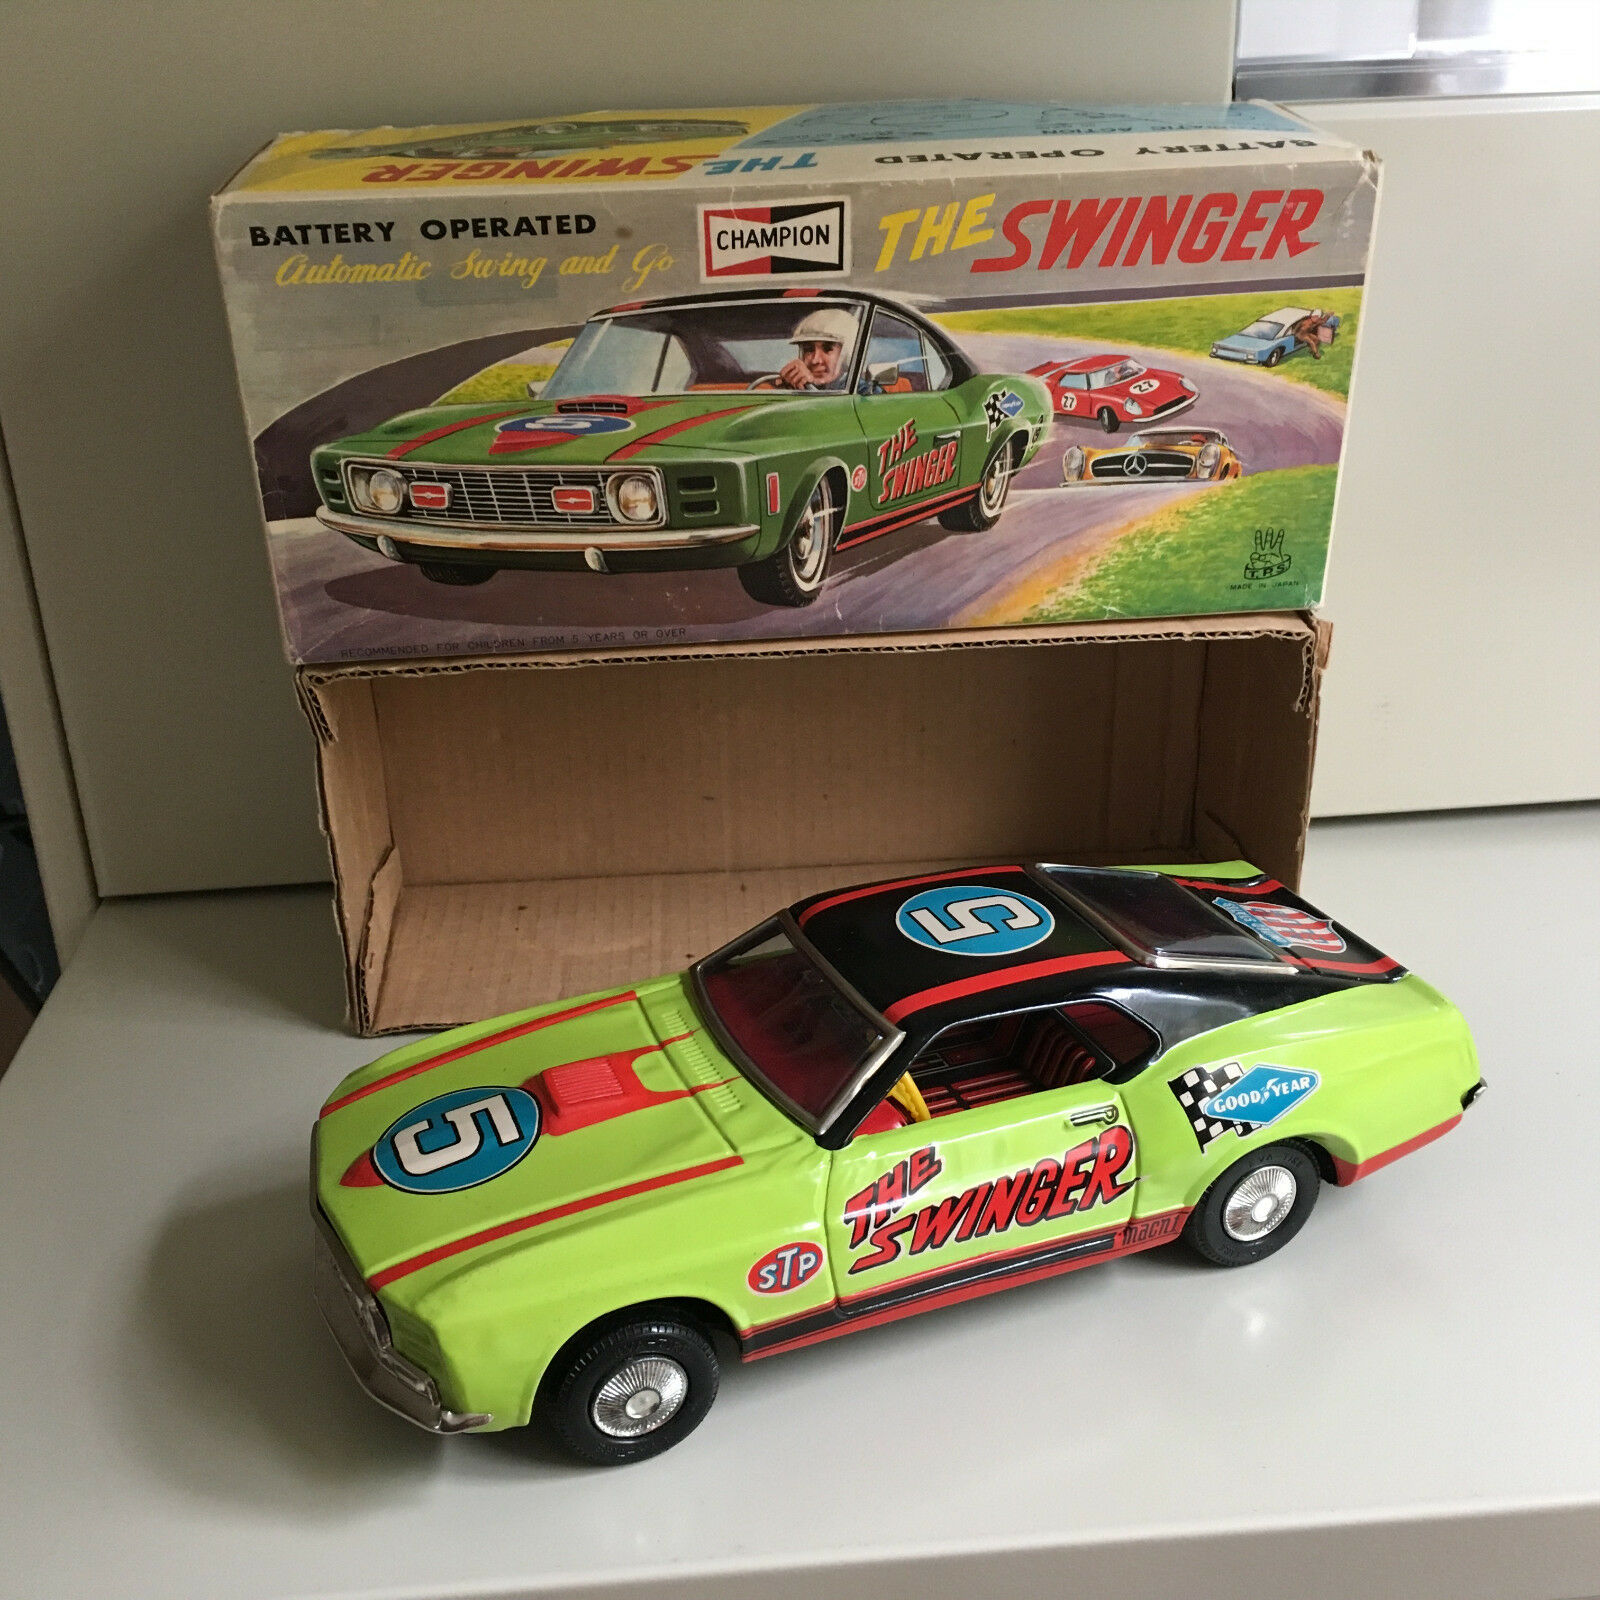 TPS TIN FORD MUSTANG MACH 1 THE SWINGER W BOX & FULLY WORKING AS DESIGNED T.P.S.